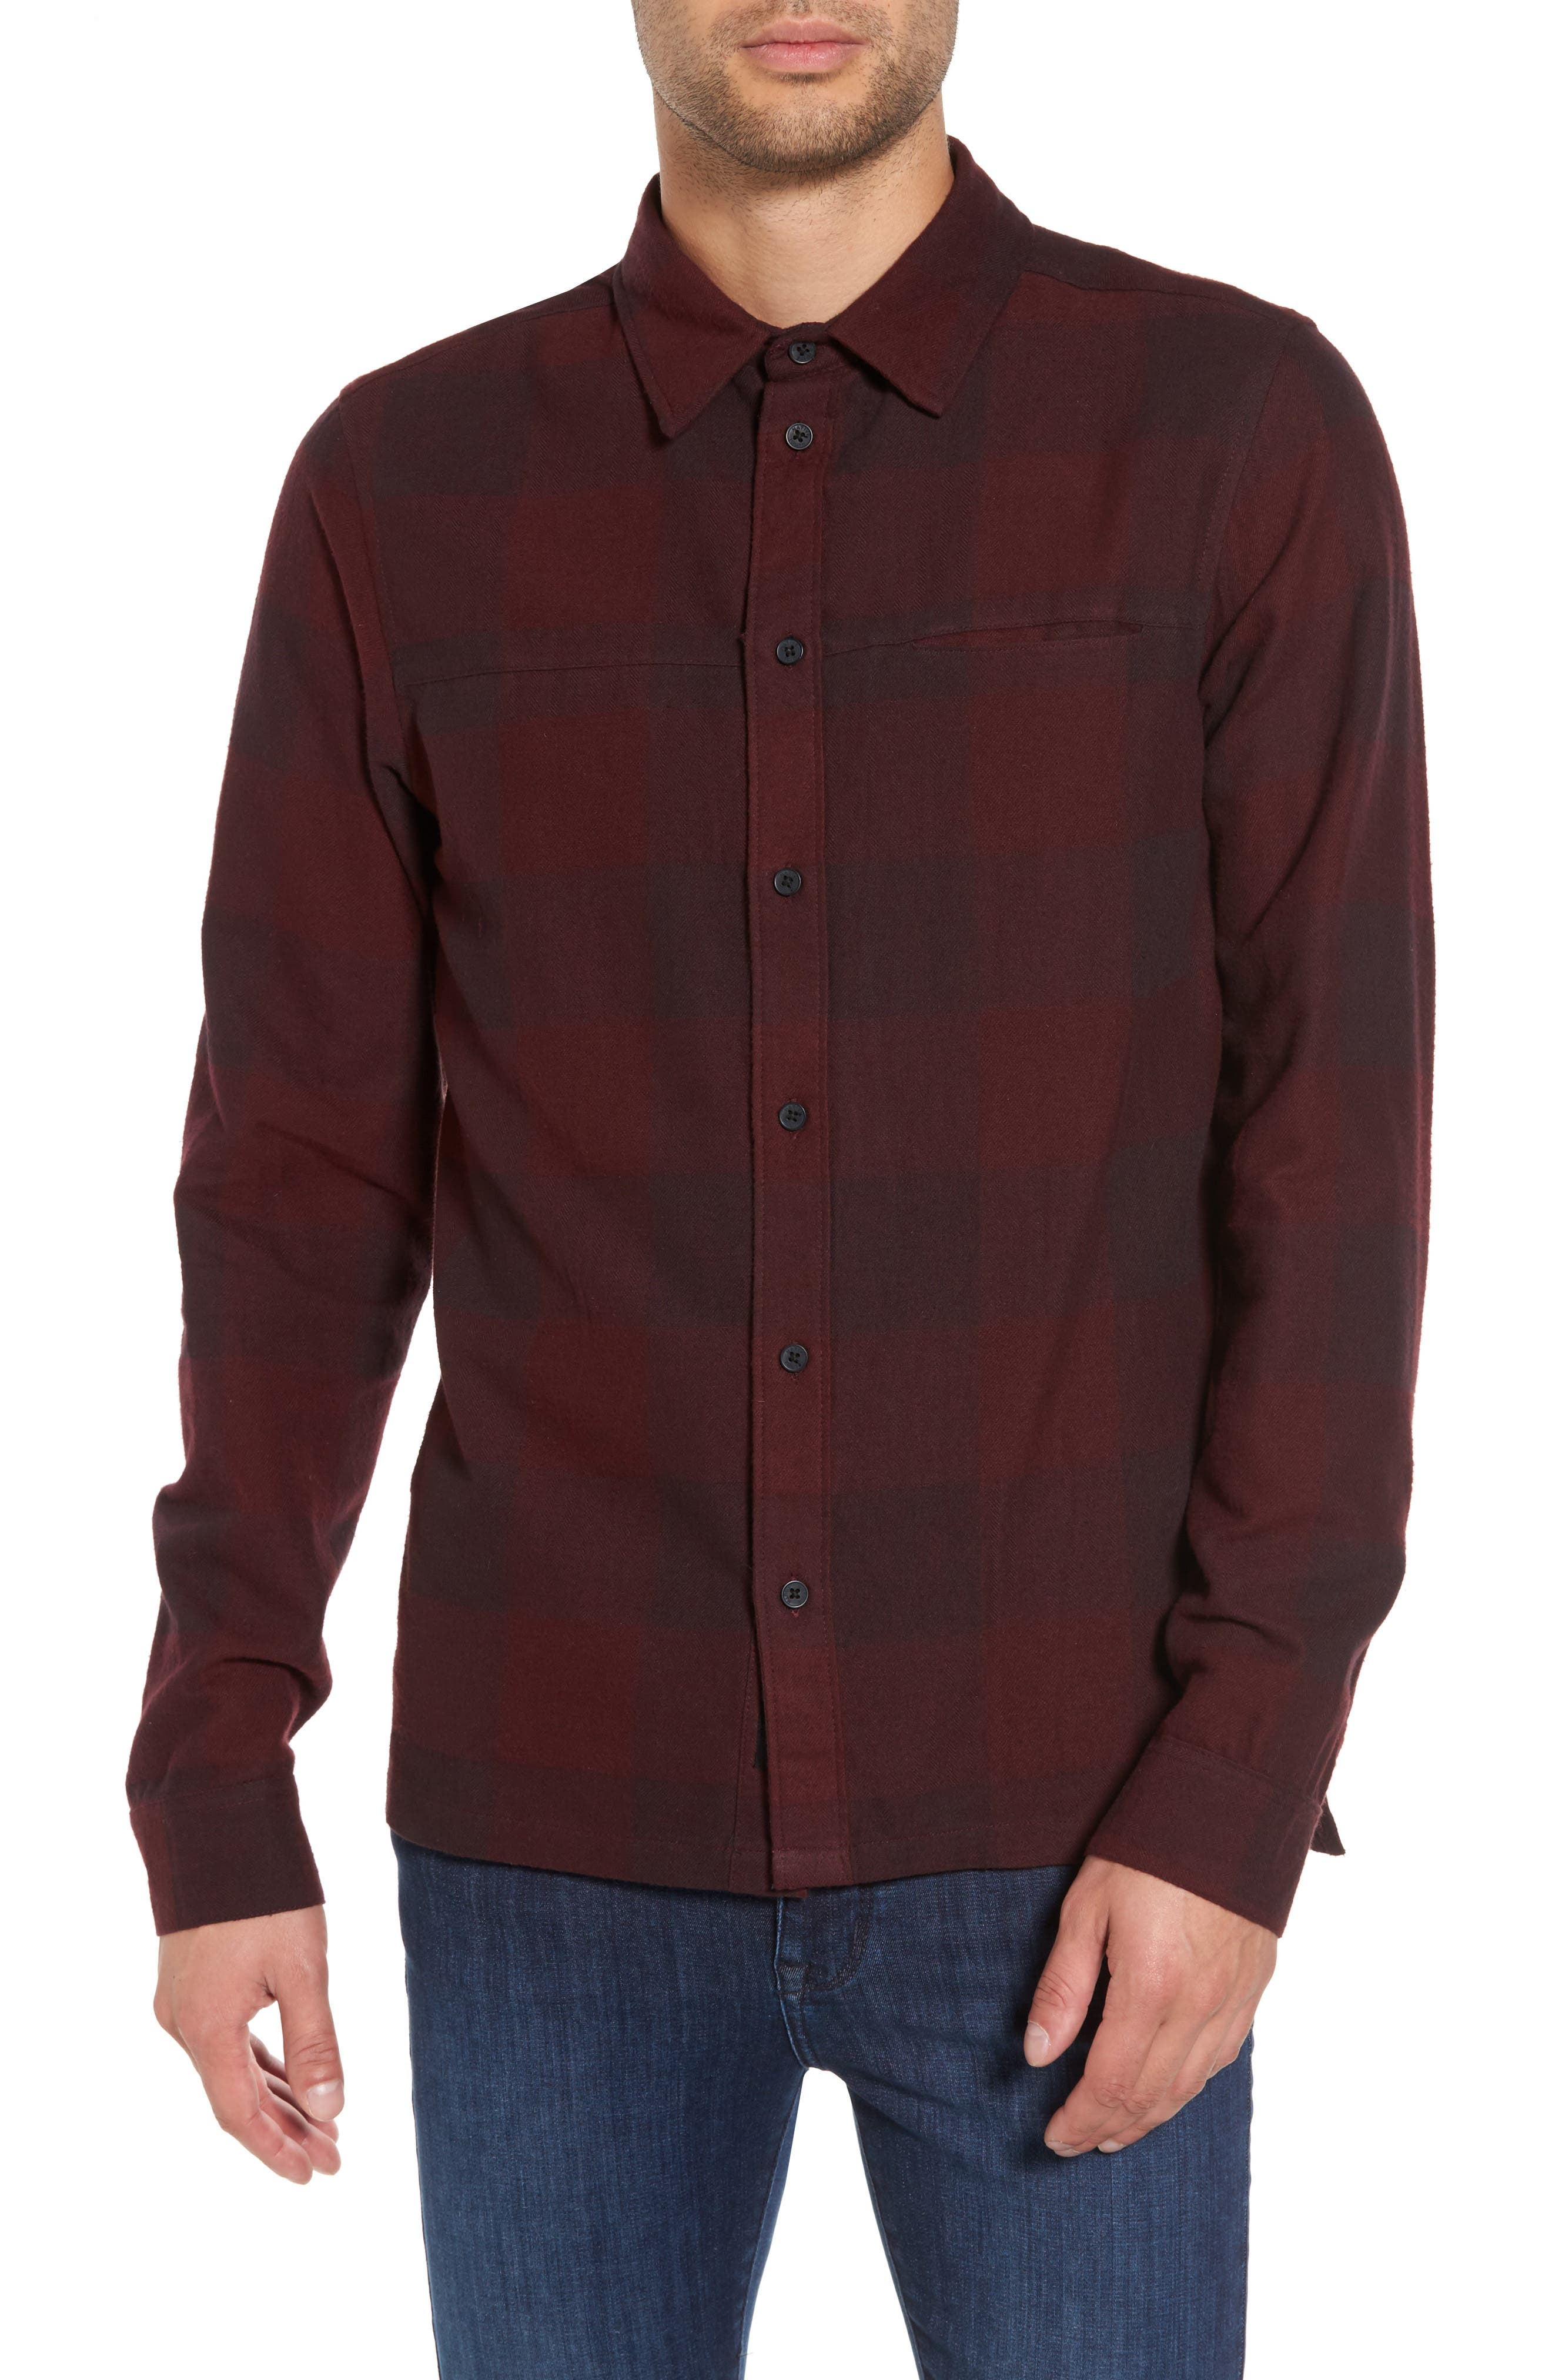 Chalgrove Buffalo Plaid Flannel Sport Shirt,                         Main,                         color, 930